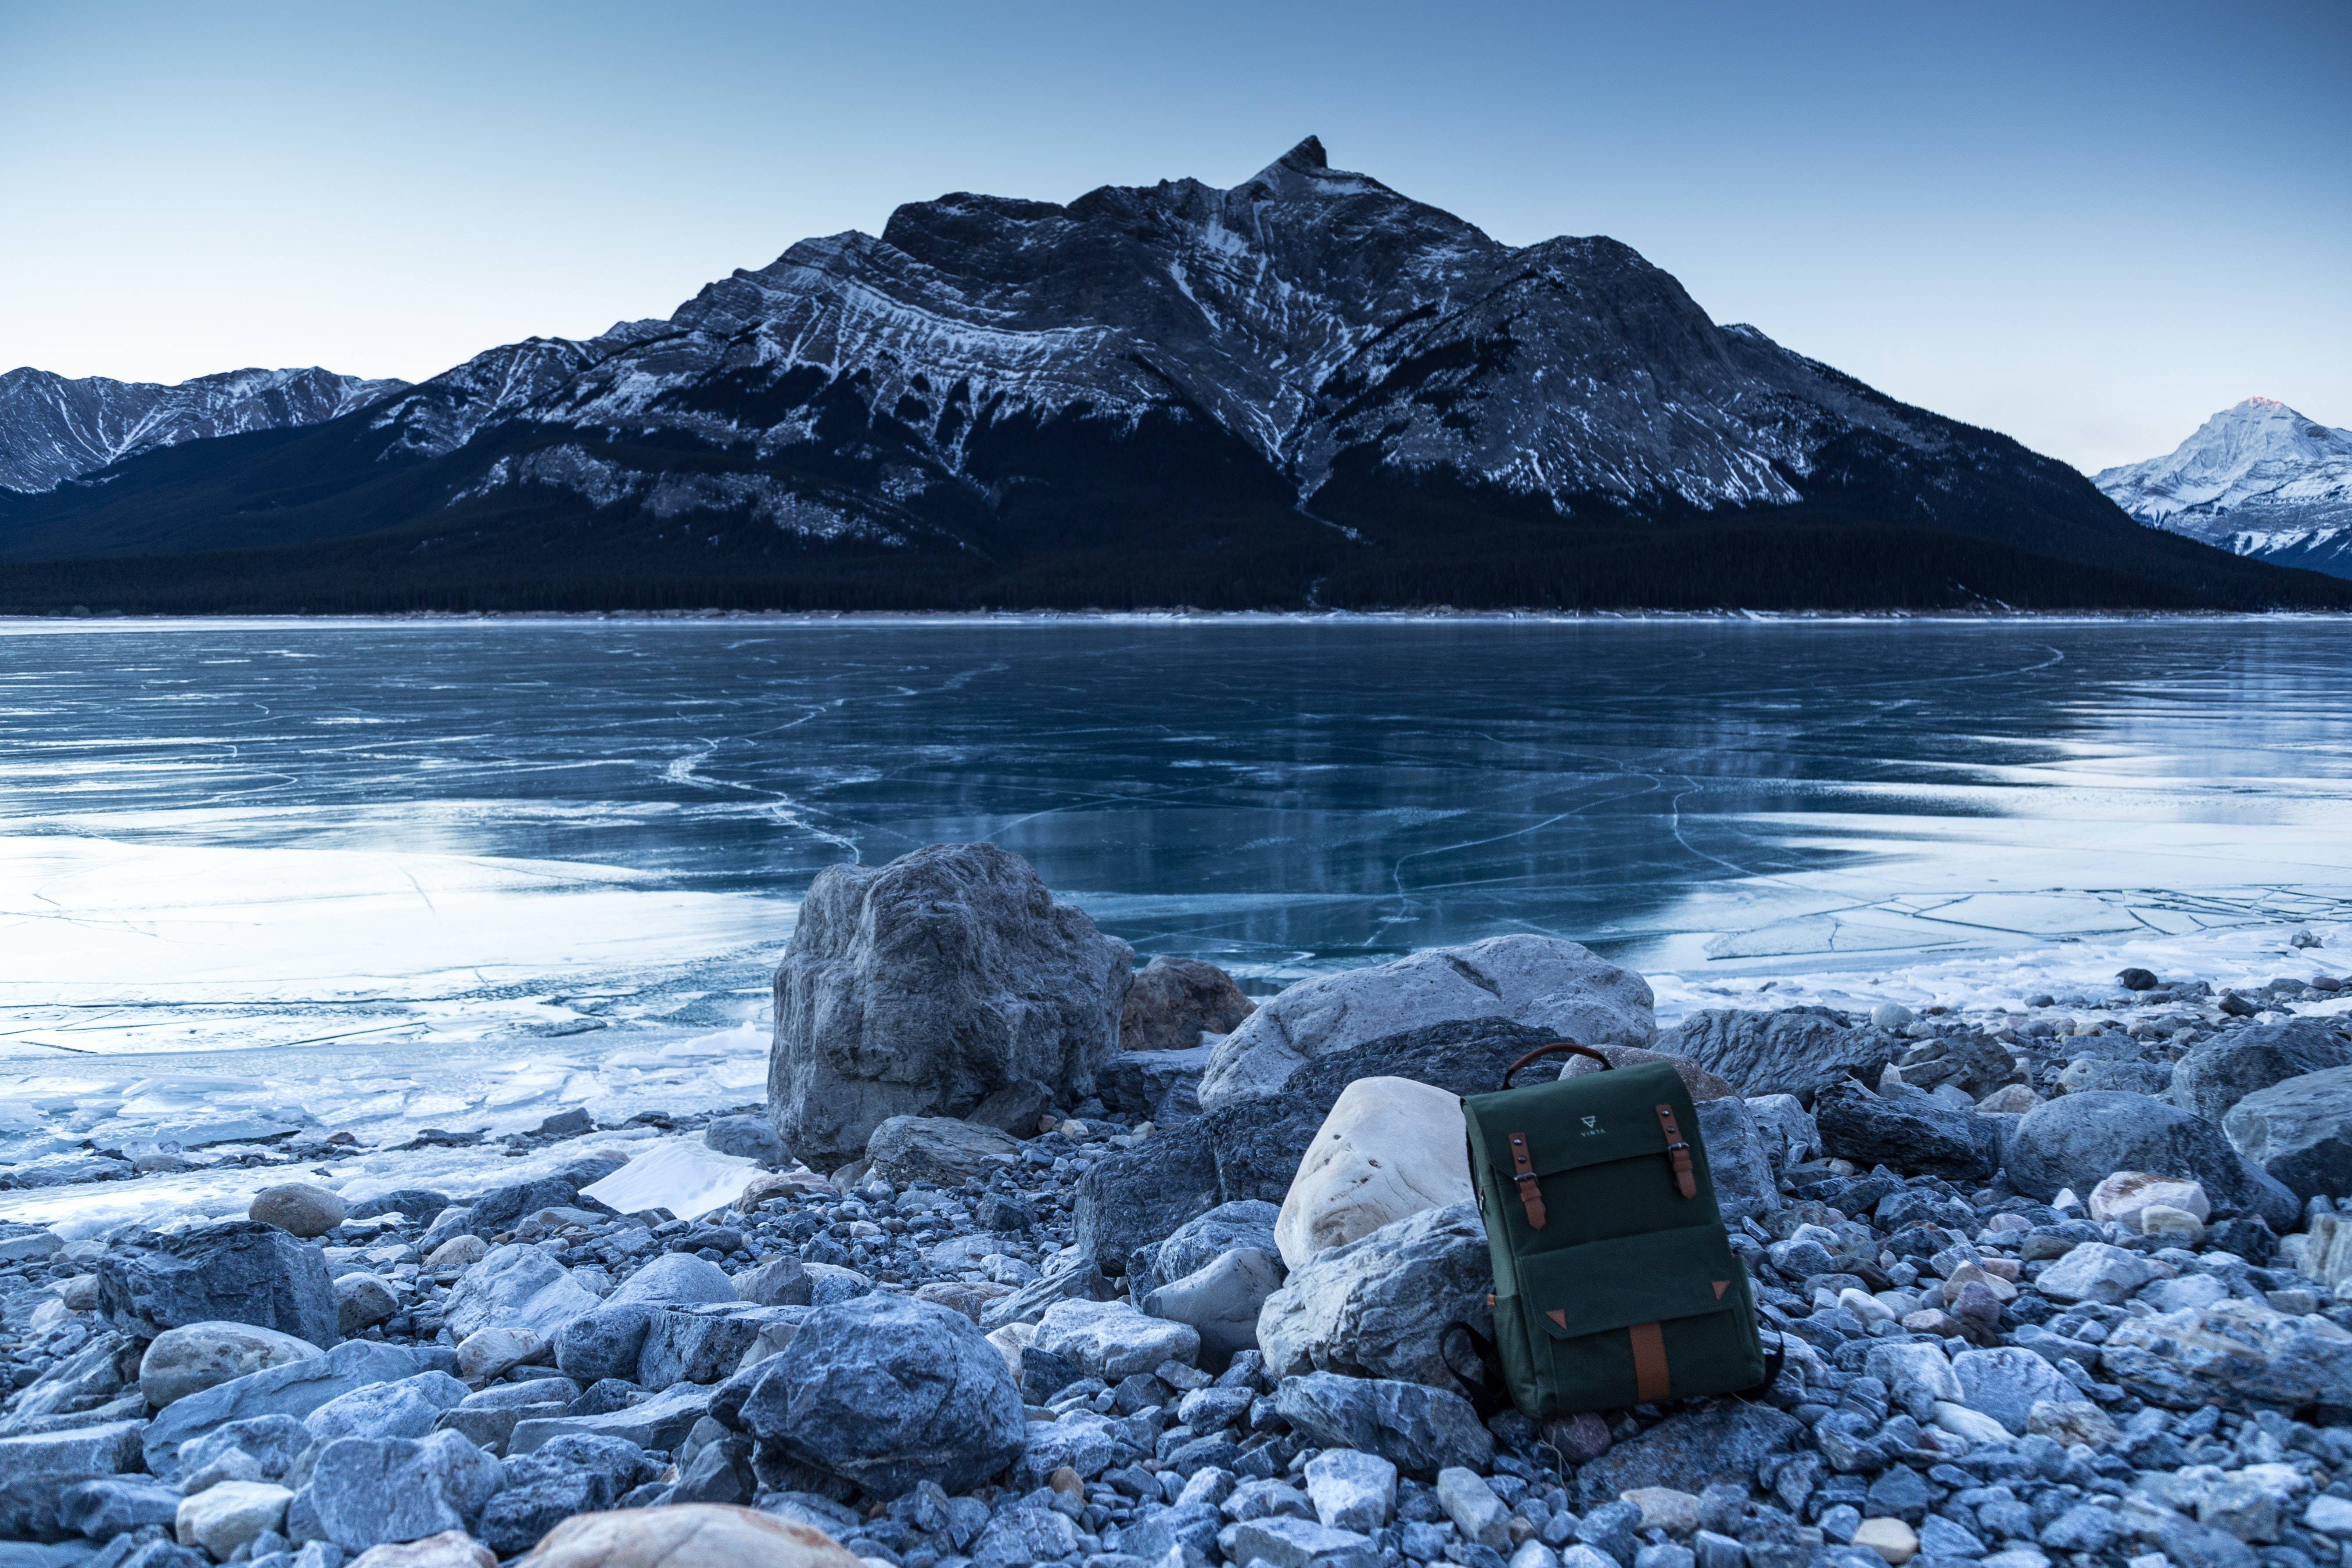 A backpack on rocks on the shore of a frozen lake in Nordegg